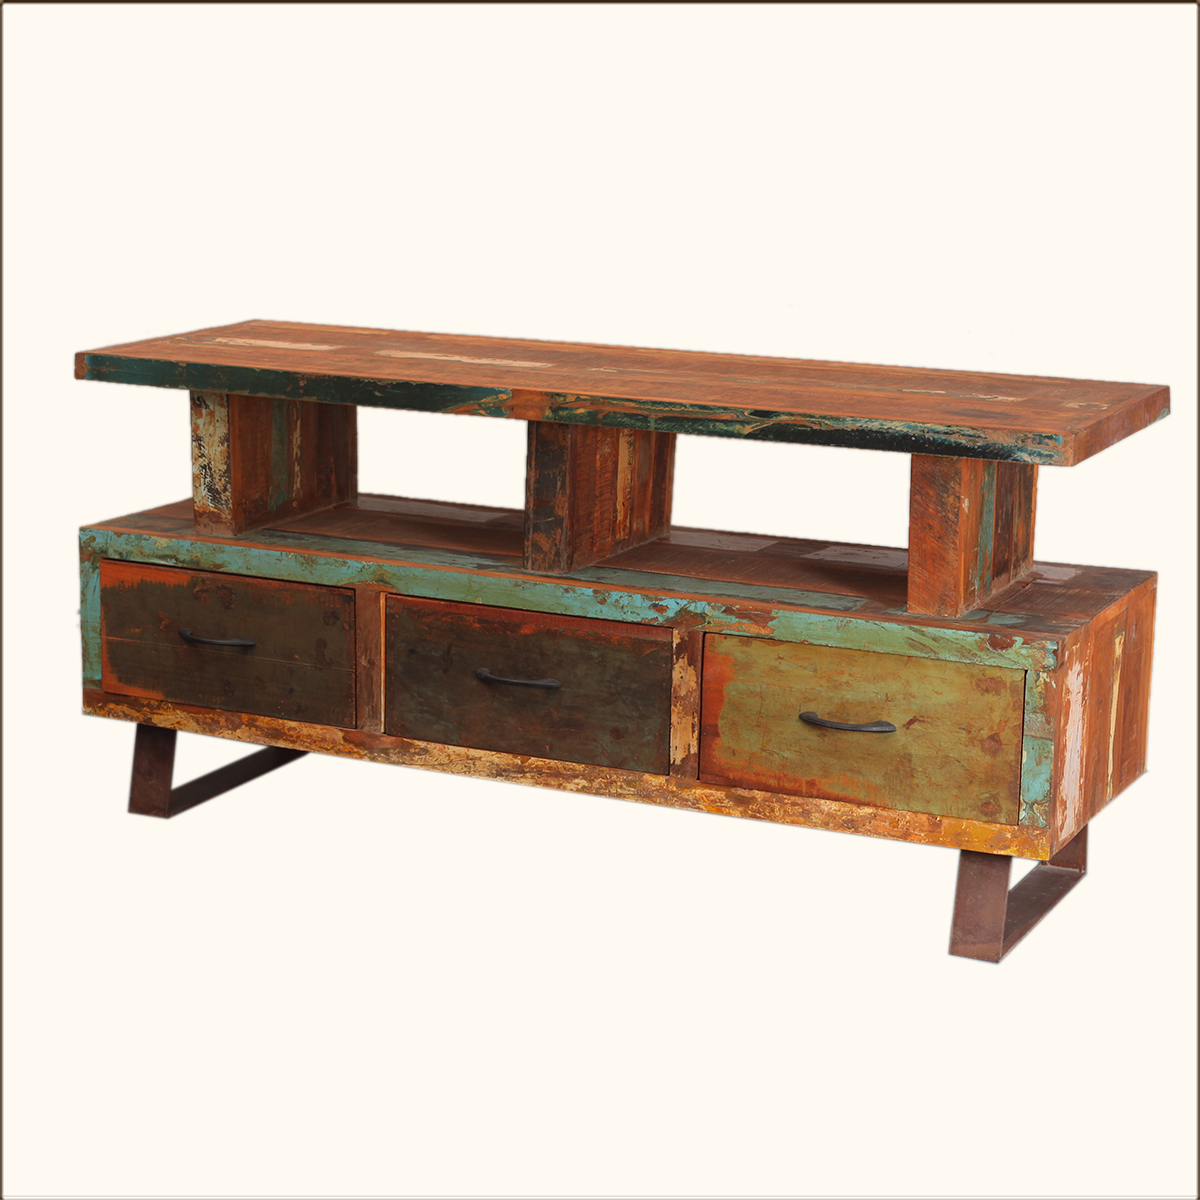 Distressed Media Console Rustic Reclaimed Wood Amp Iron TV